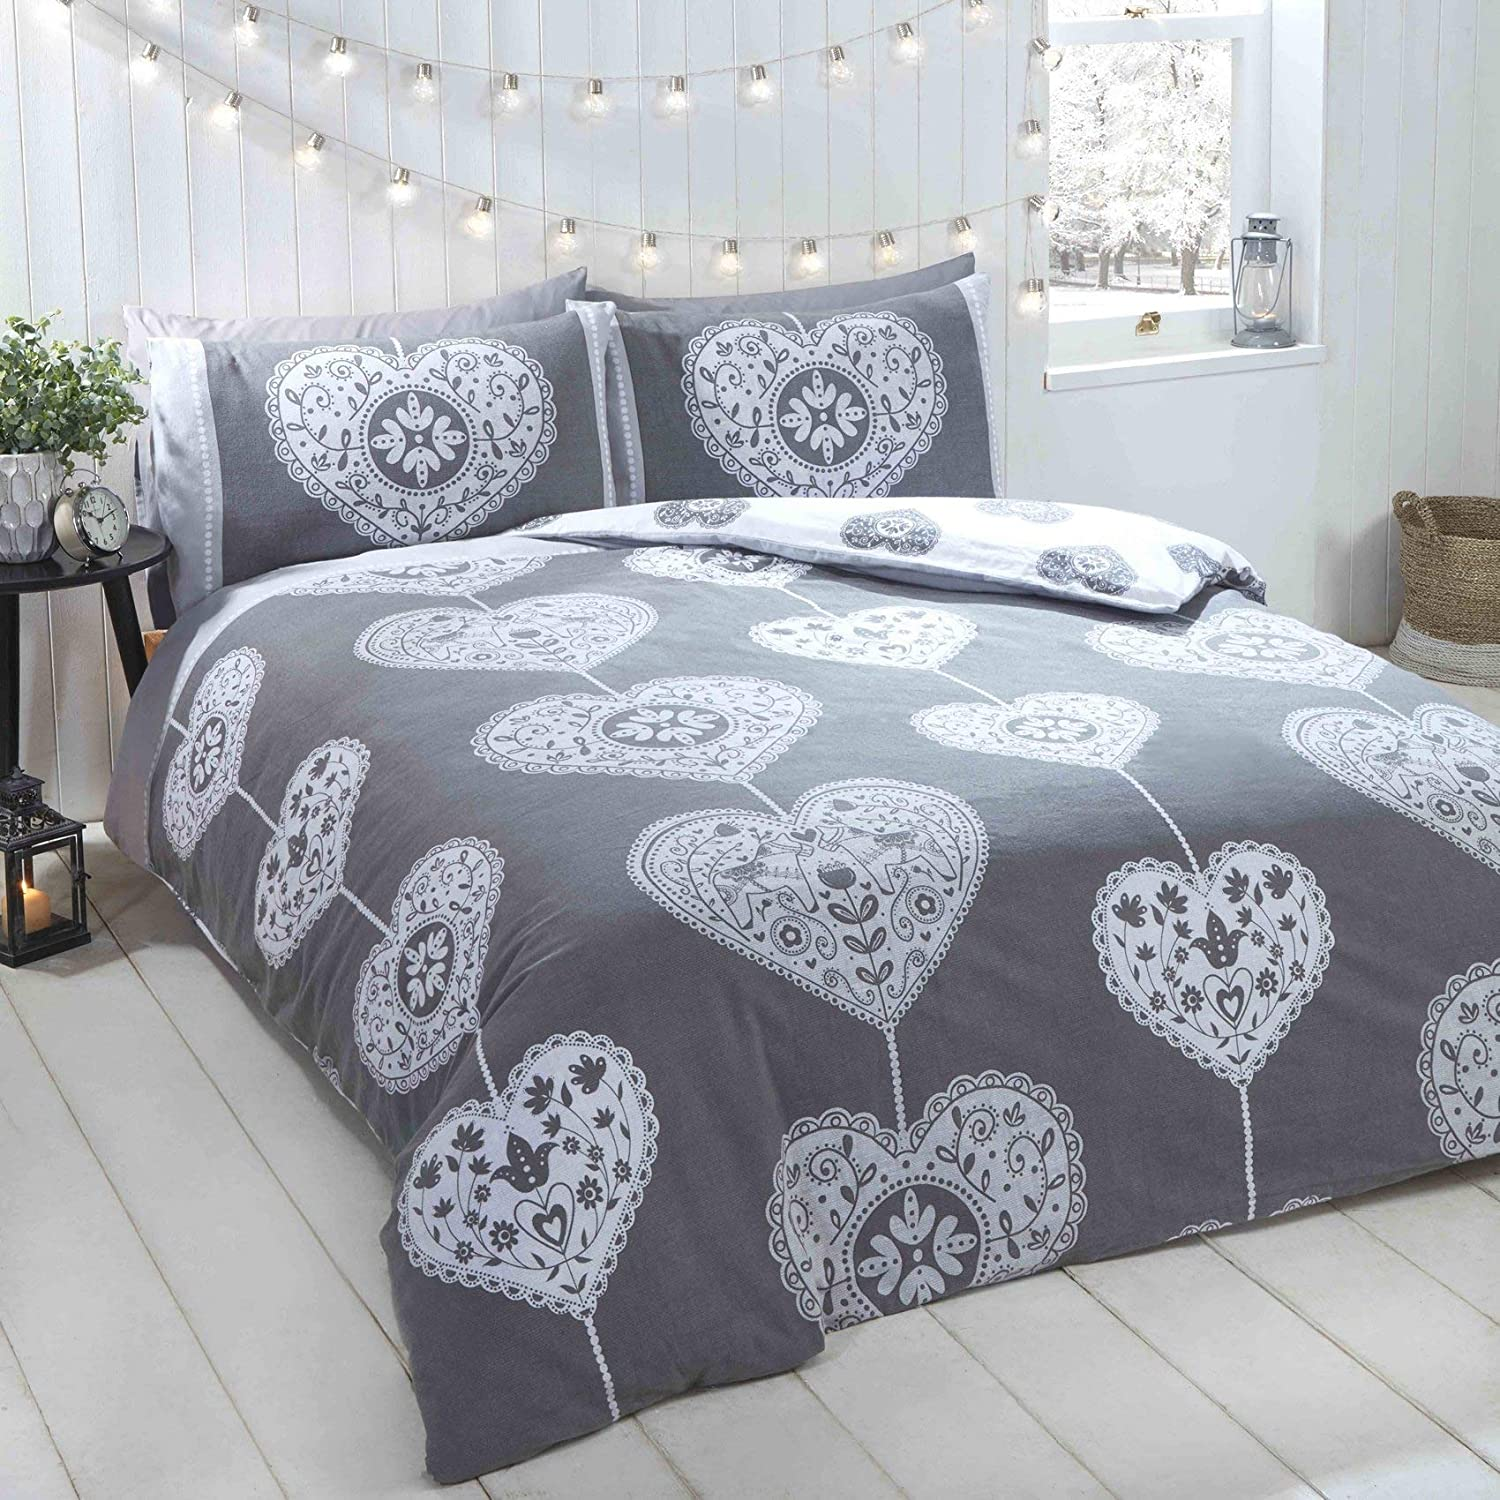 Rapport Skandi Hearts Double Duvet Set 100/% Brushed Cotton Grey CHEAPEST ON